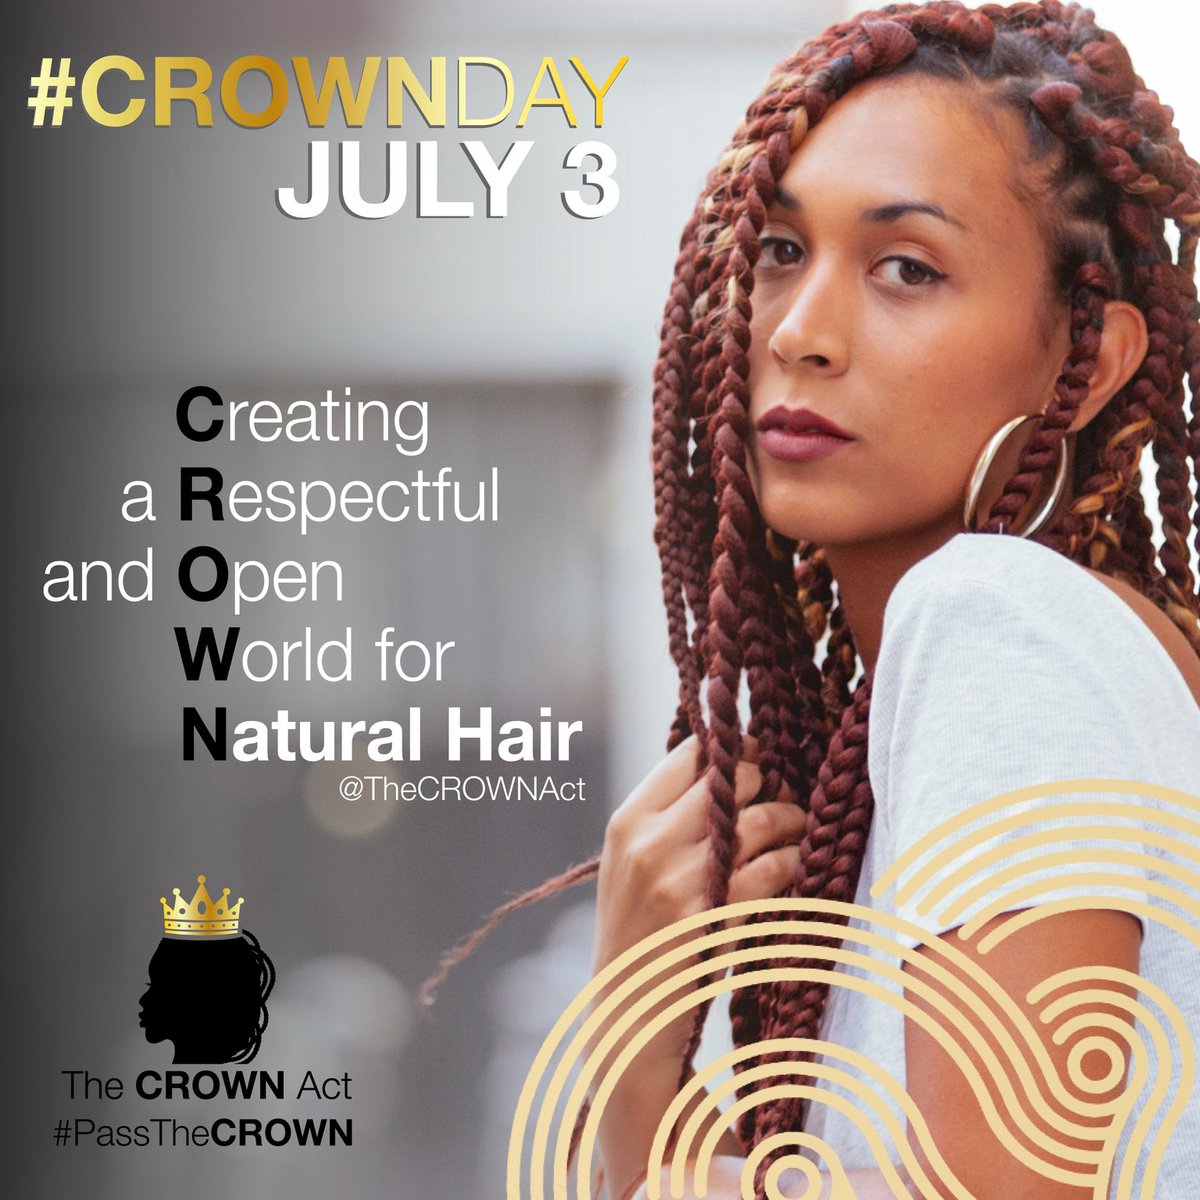 Let's end #hair discrimination together. Here's how you can join the effort from wherever you are:   👑 Sign the petition at https://t.co/P1FxeiUkYY   👑 Wear your #CROWN boldly and proudly and tag us in your pictures!  #CROWNDay #CROWNAct (2) https://t.co/bm5IgTrltM